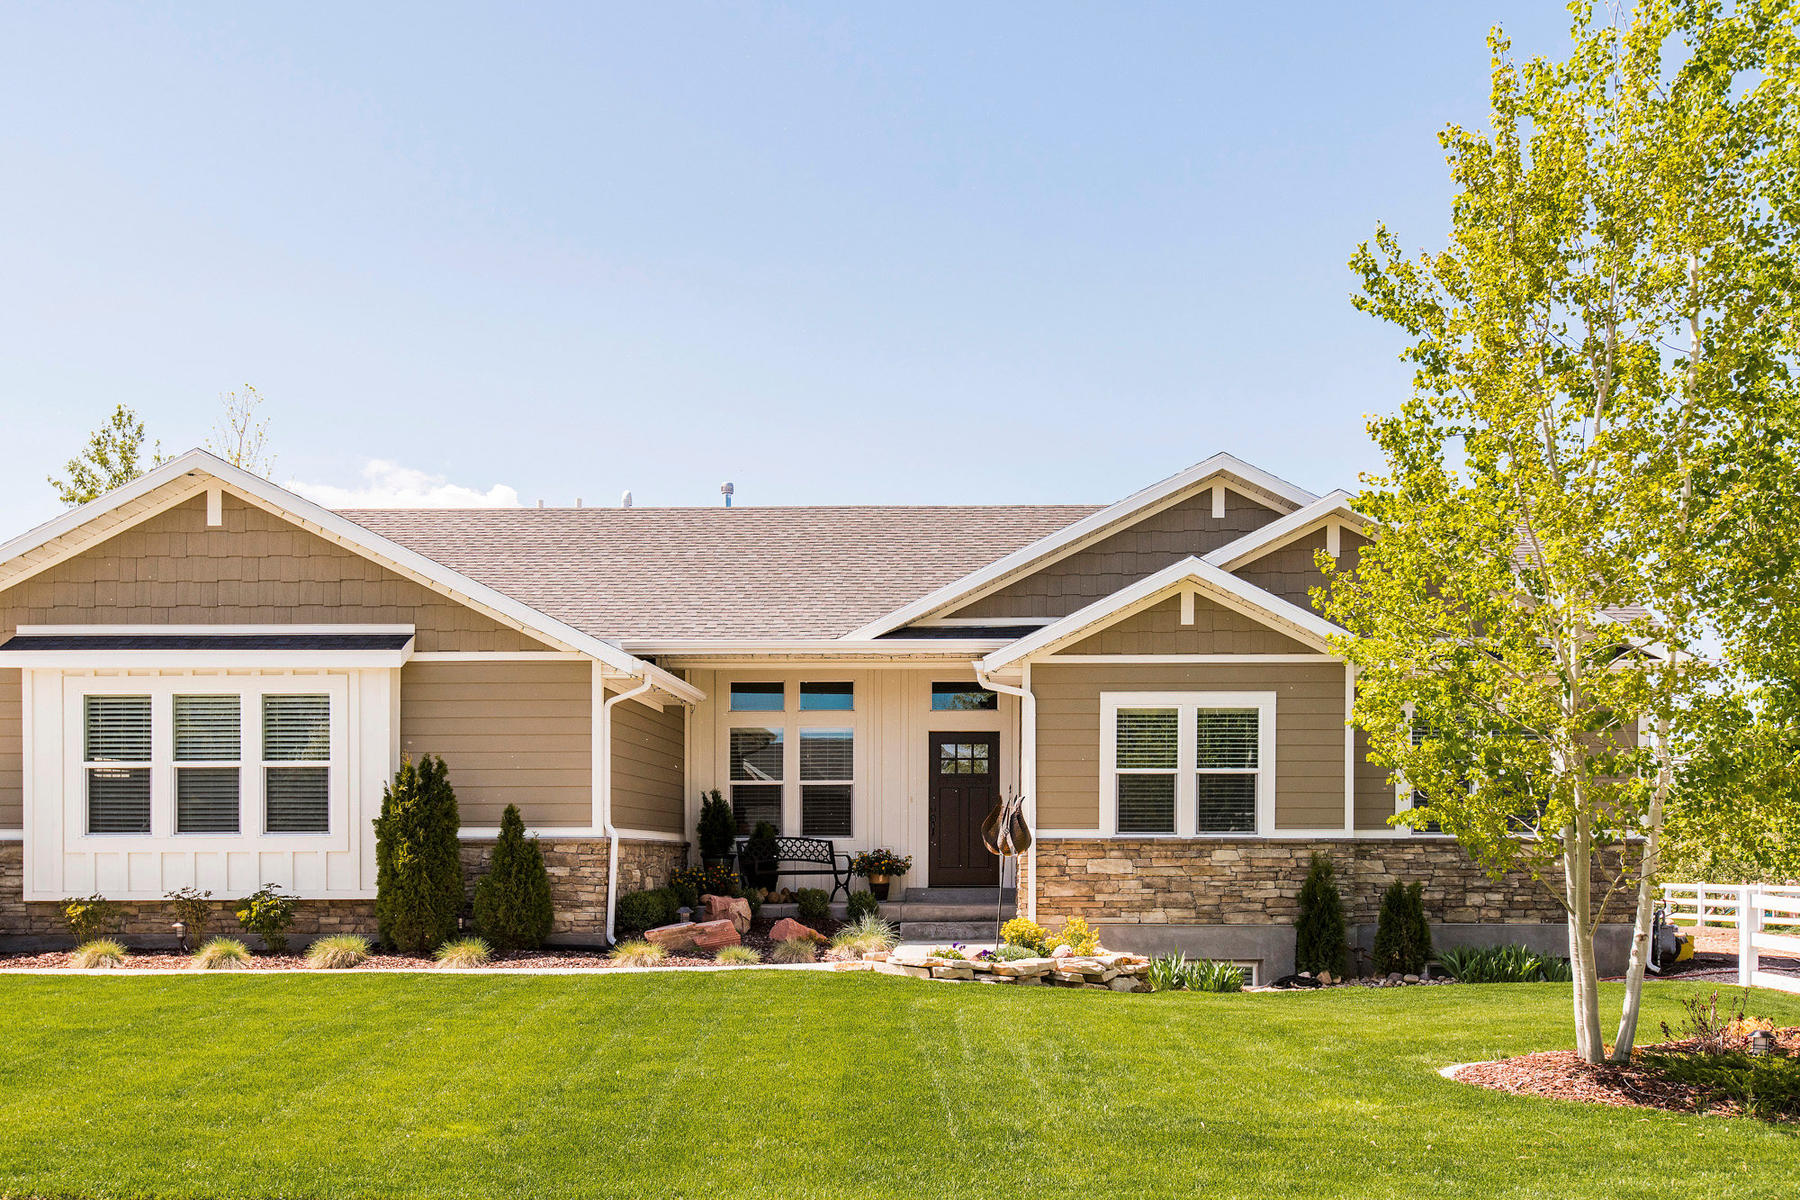 Single Family Homes for Active at Perfect Main-Level Living on a Beautiful Half-Acre 795 W Oak Ln Lot #A28 Francis, Utah 84036 United States